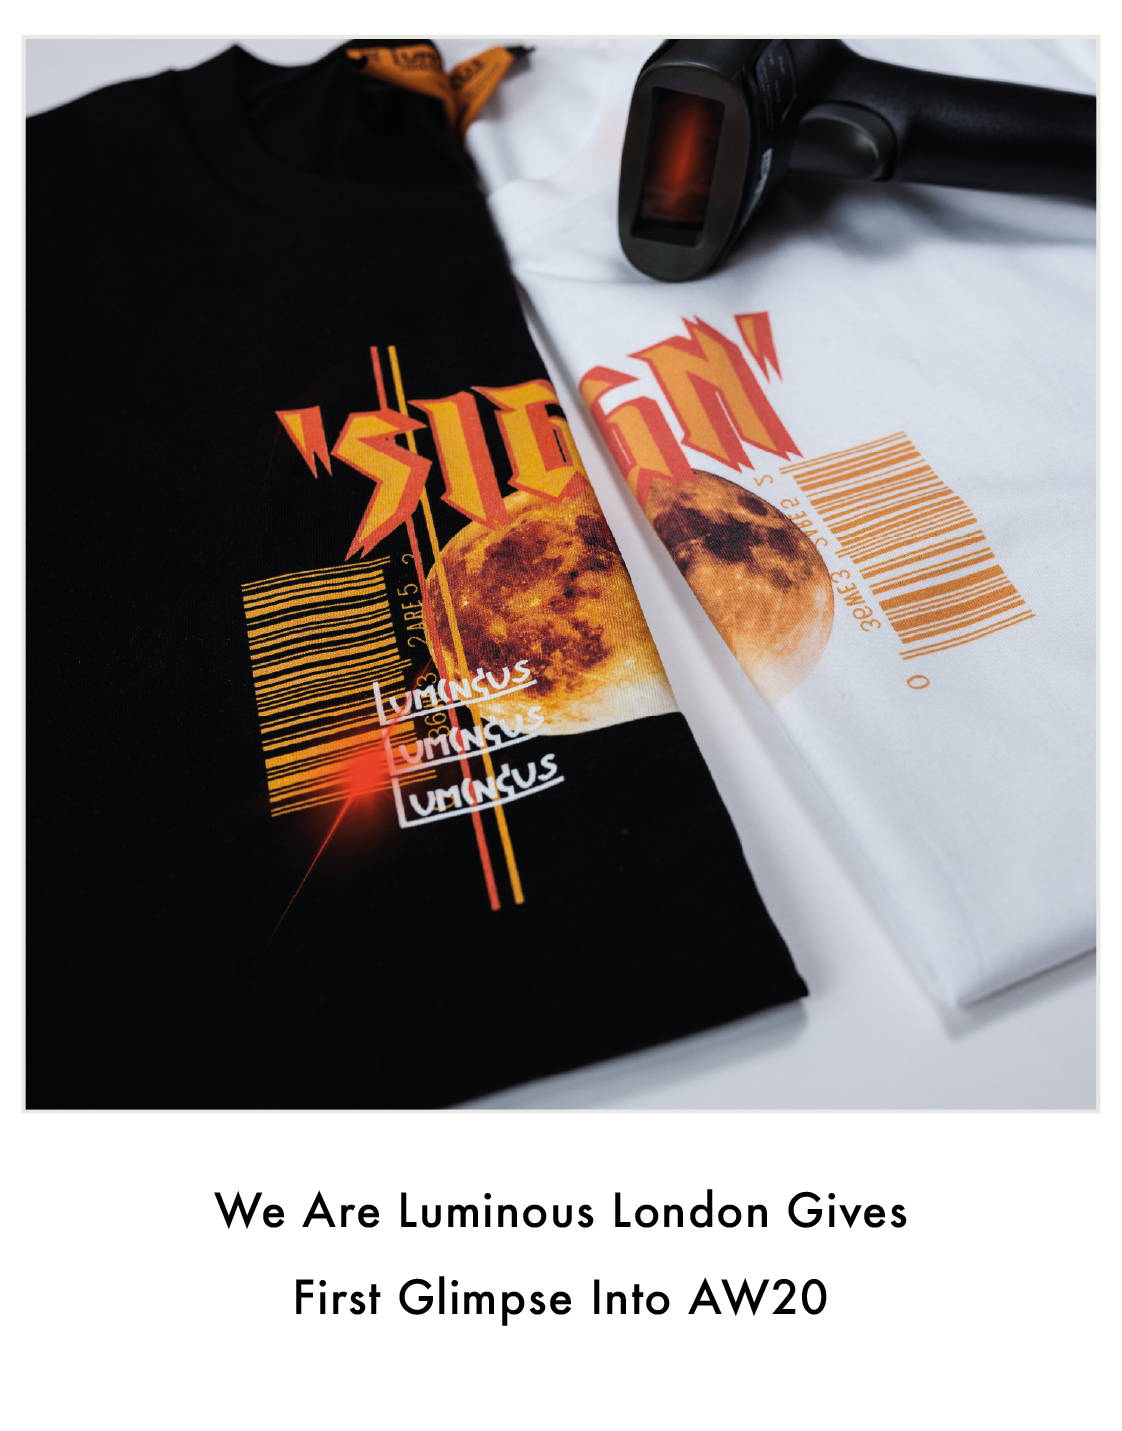 We Are Luminous London Gives First Glimpse Into AW20